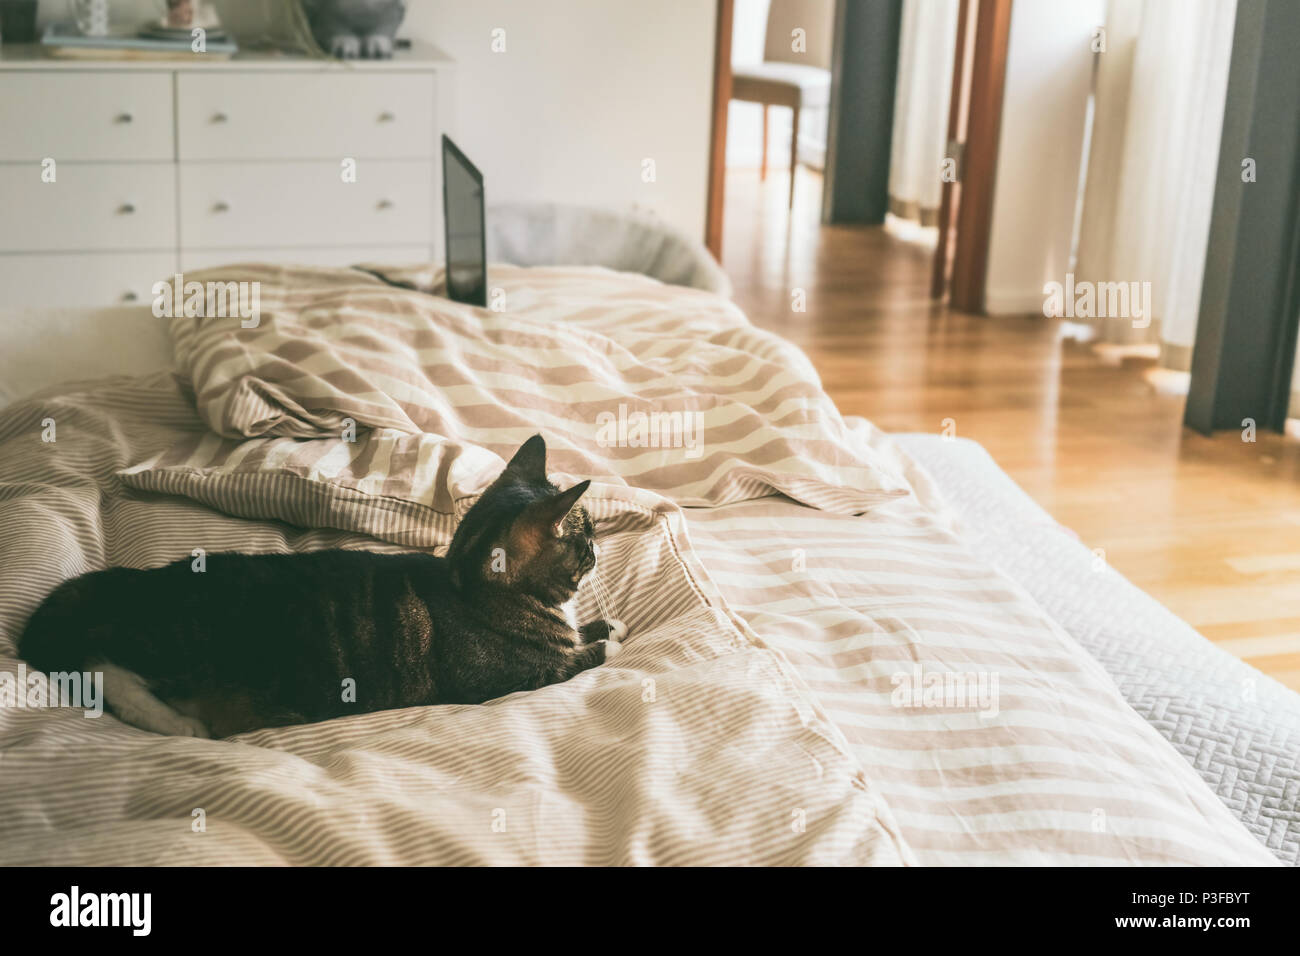 cat lies in bed in bedroom with large window. House still life. Cozy home scene - Stock Image